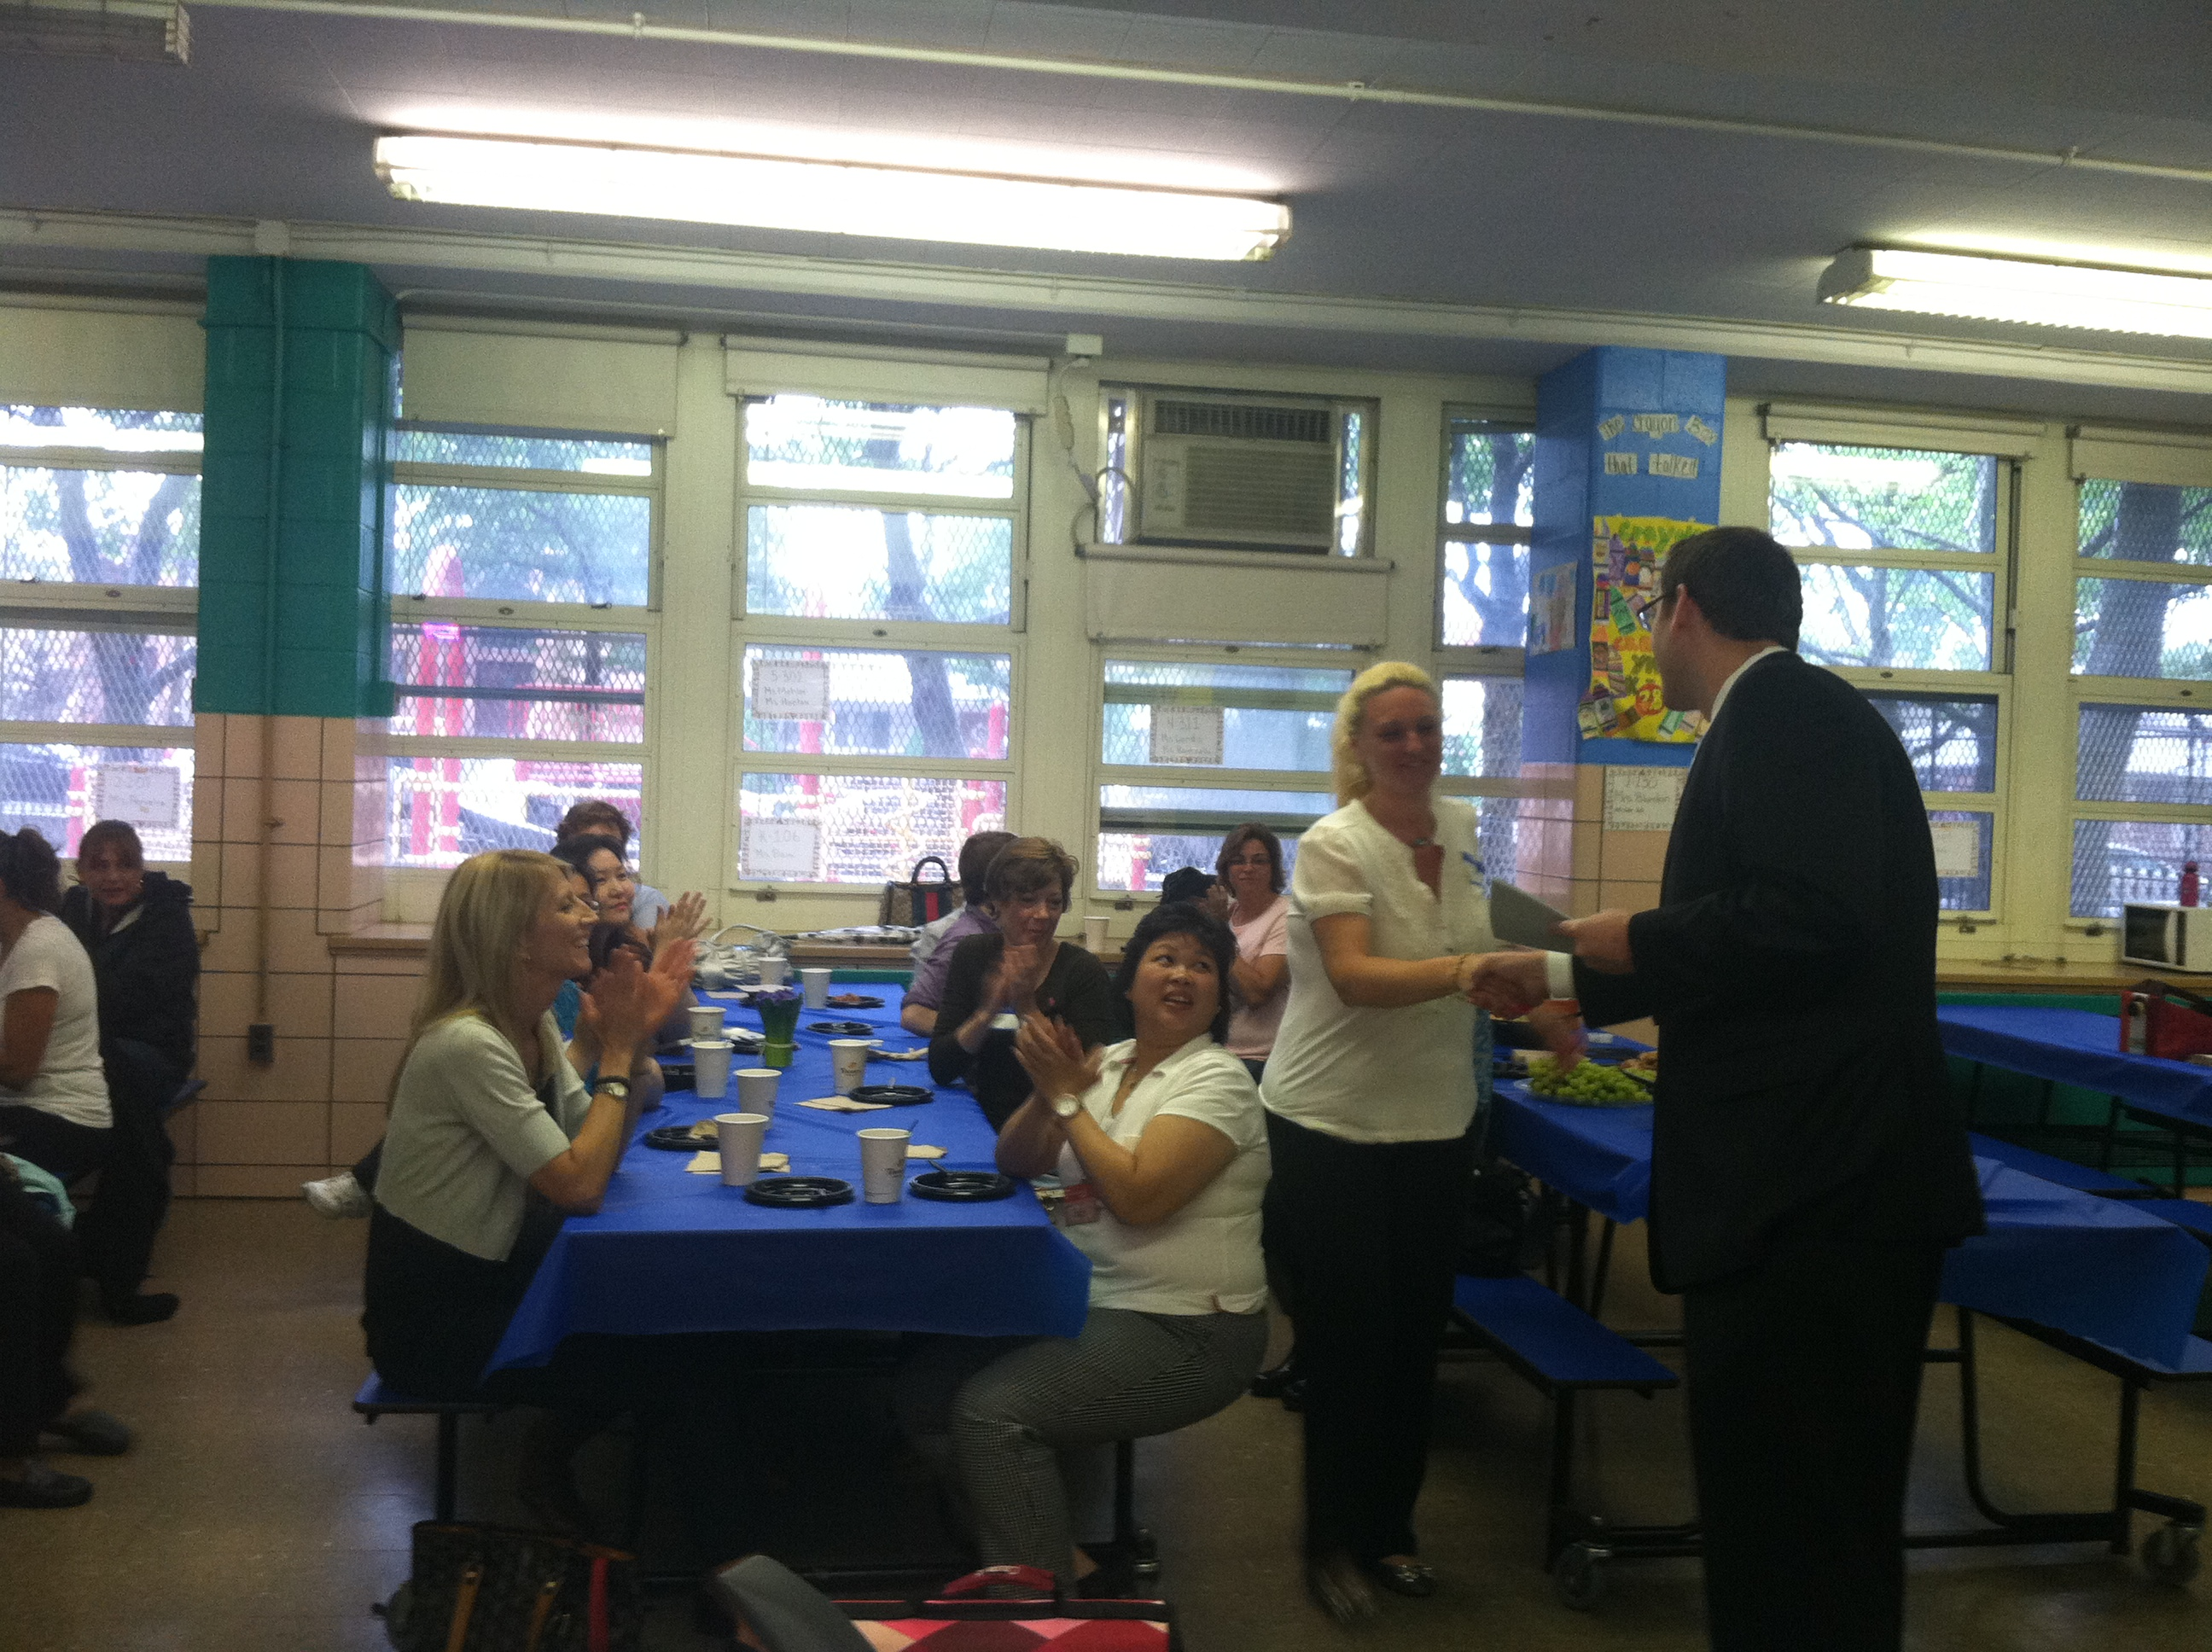 On Friday, June 7, 2013, Assemblyman Braunstein presented certificates to the parent volunteers of Public School 209 in Whitestone.